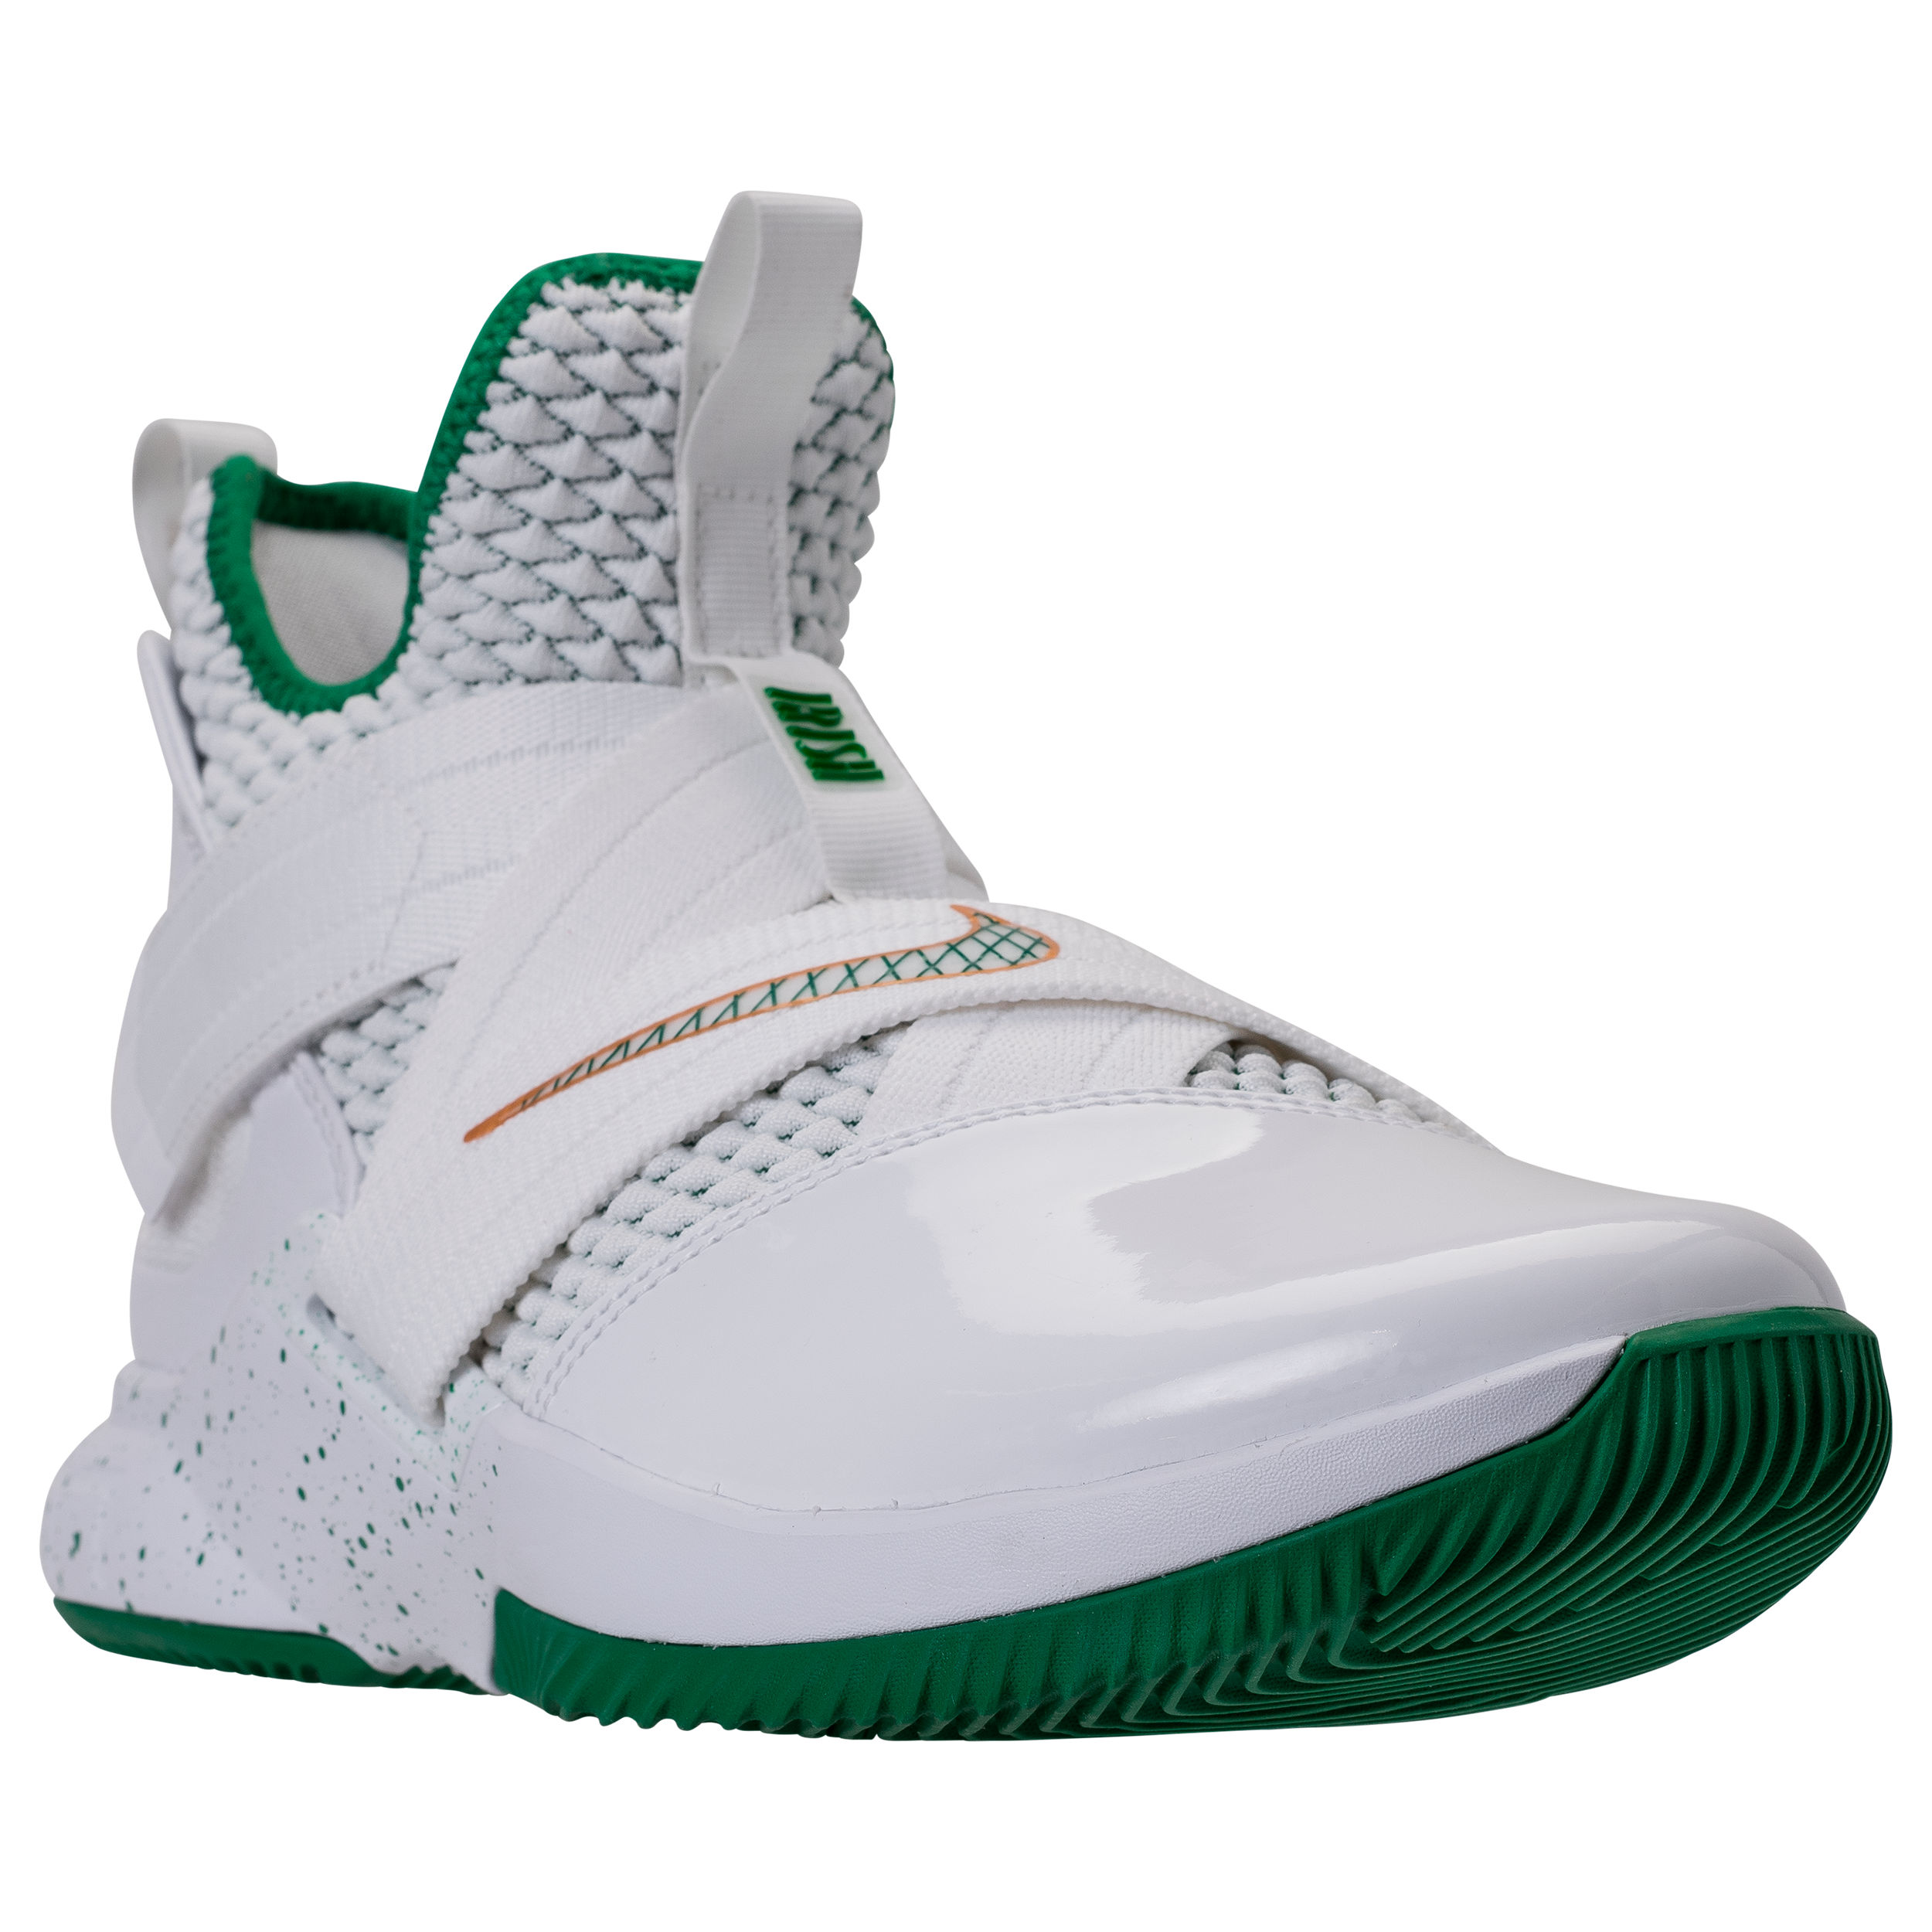 free shipping 0d2f0 5d935 The Nike LeBron Soldier 12 'SVSM' Has a Release Date ...